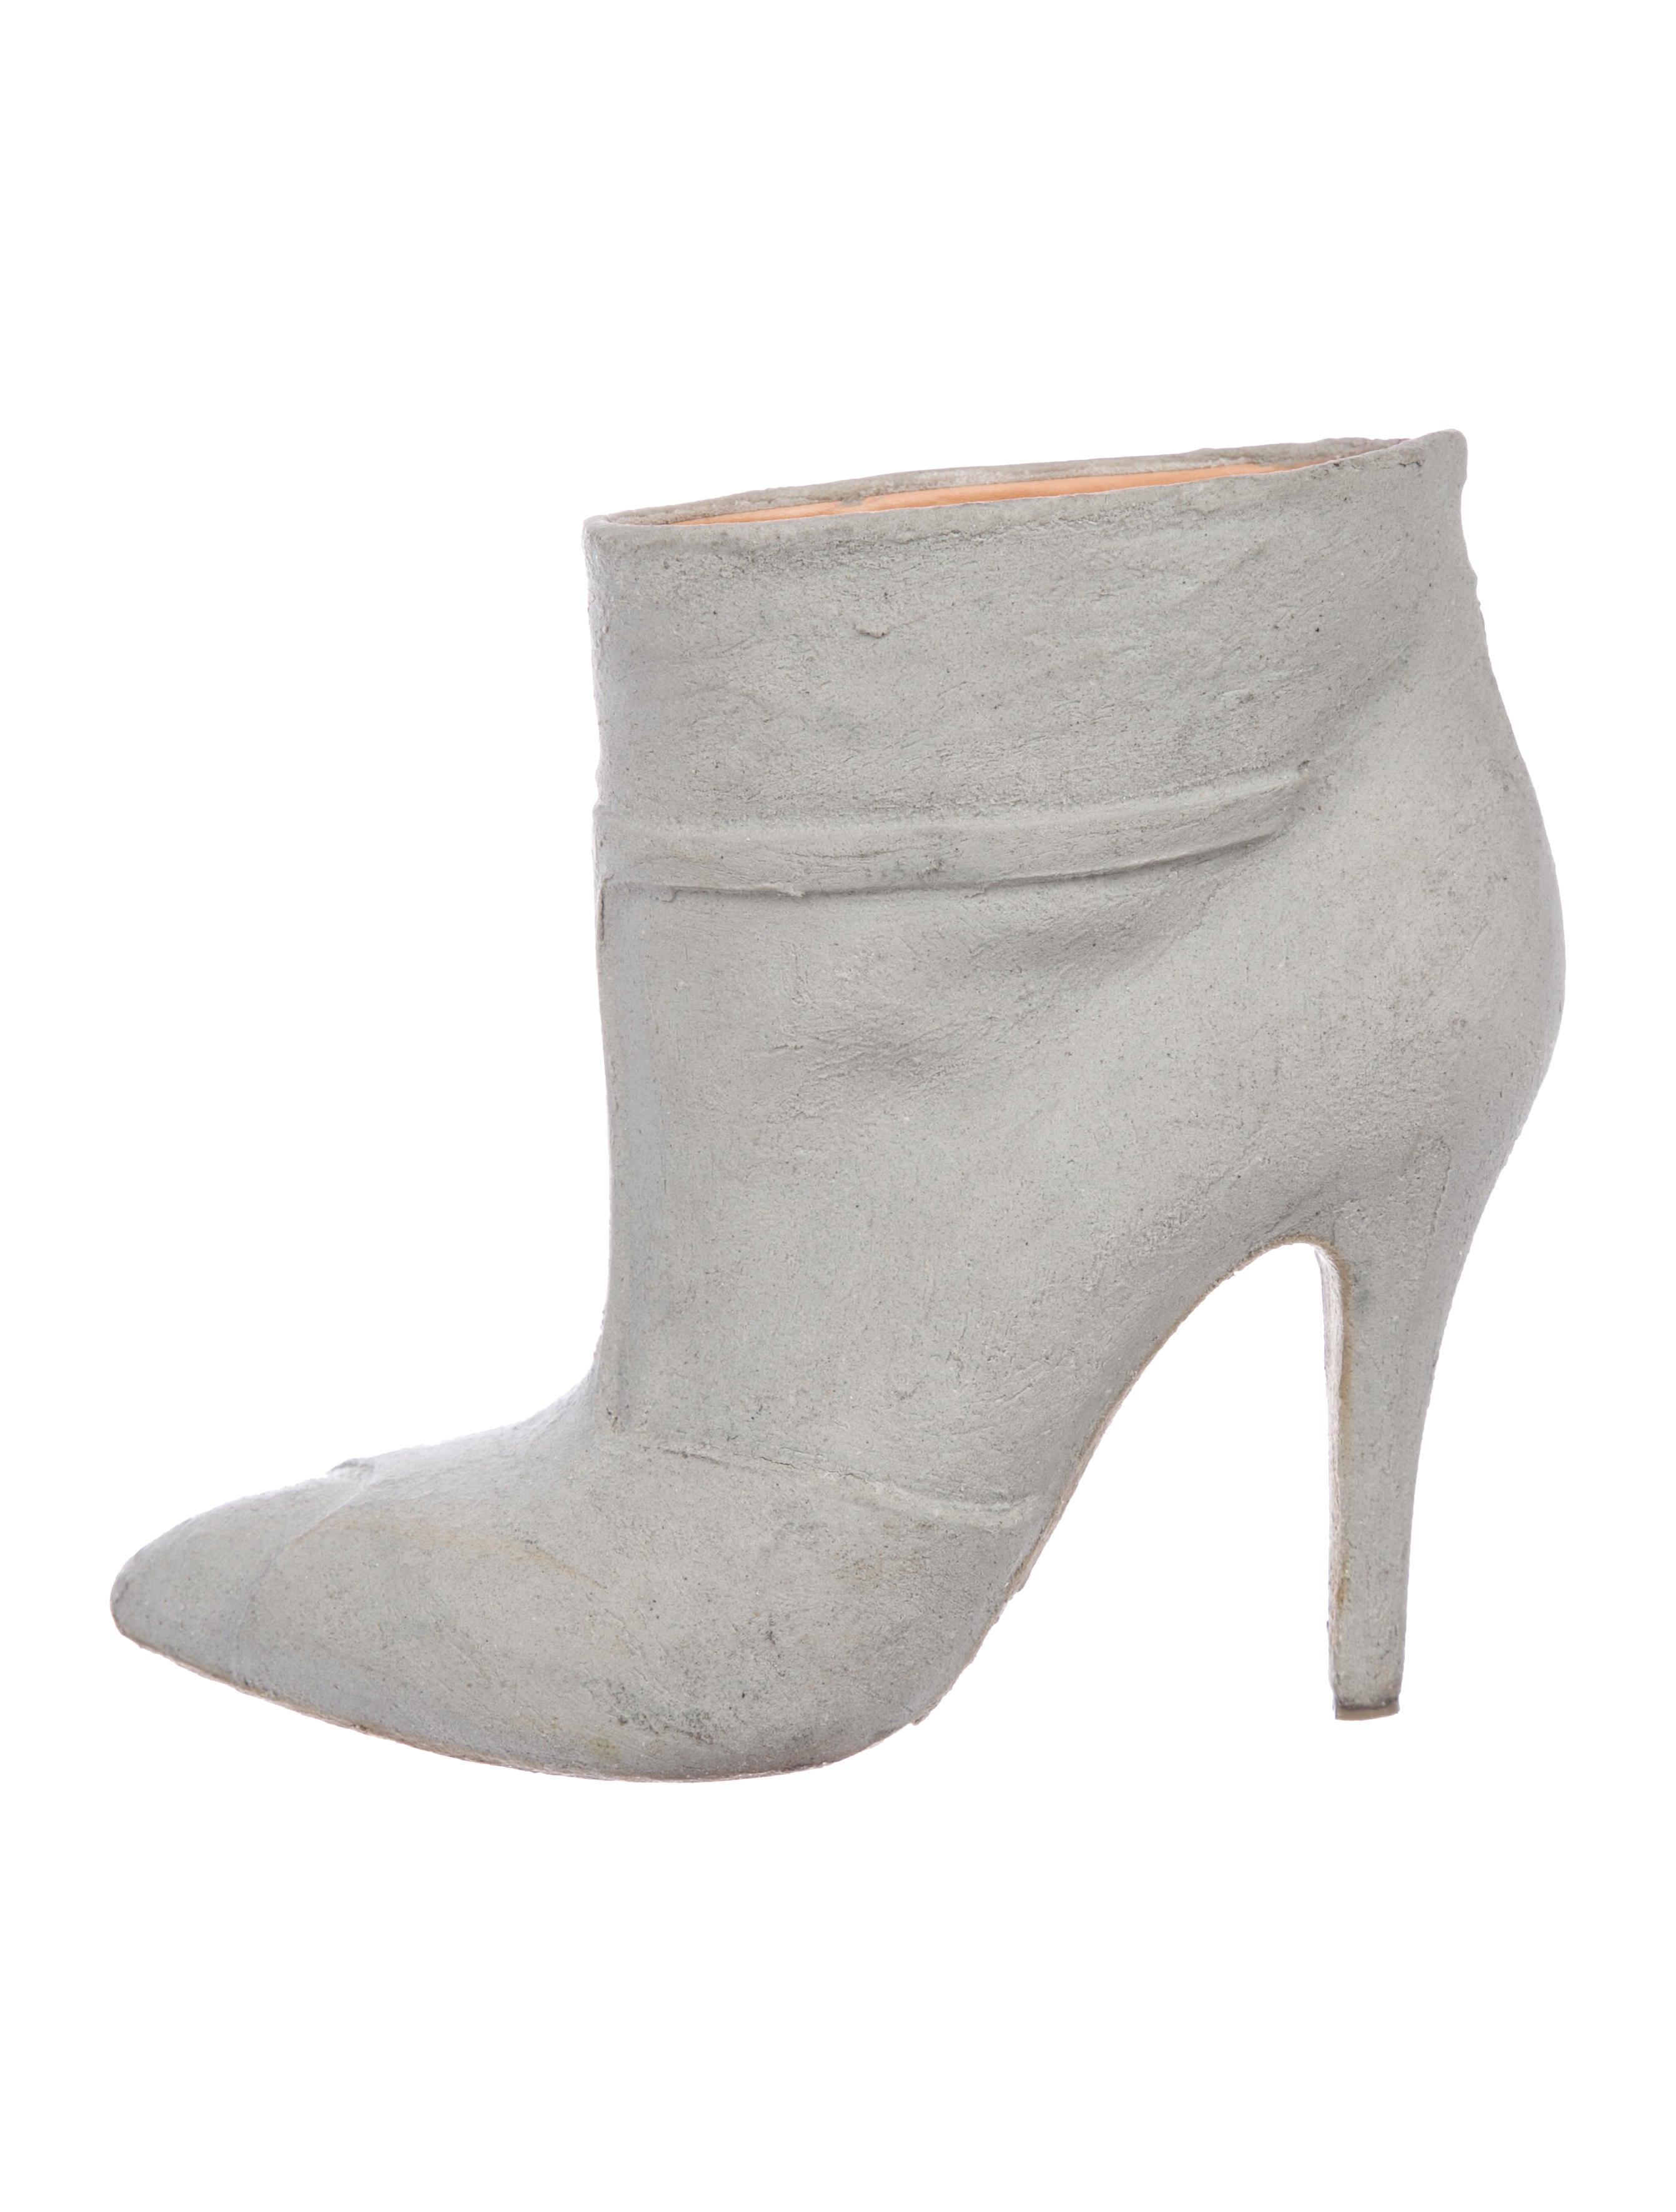 tumblr sale online Maison Margiela Graffiti Cement-Dipped Ankle Boots buy cheap for nice free shipping extremely pXhgek